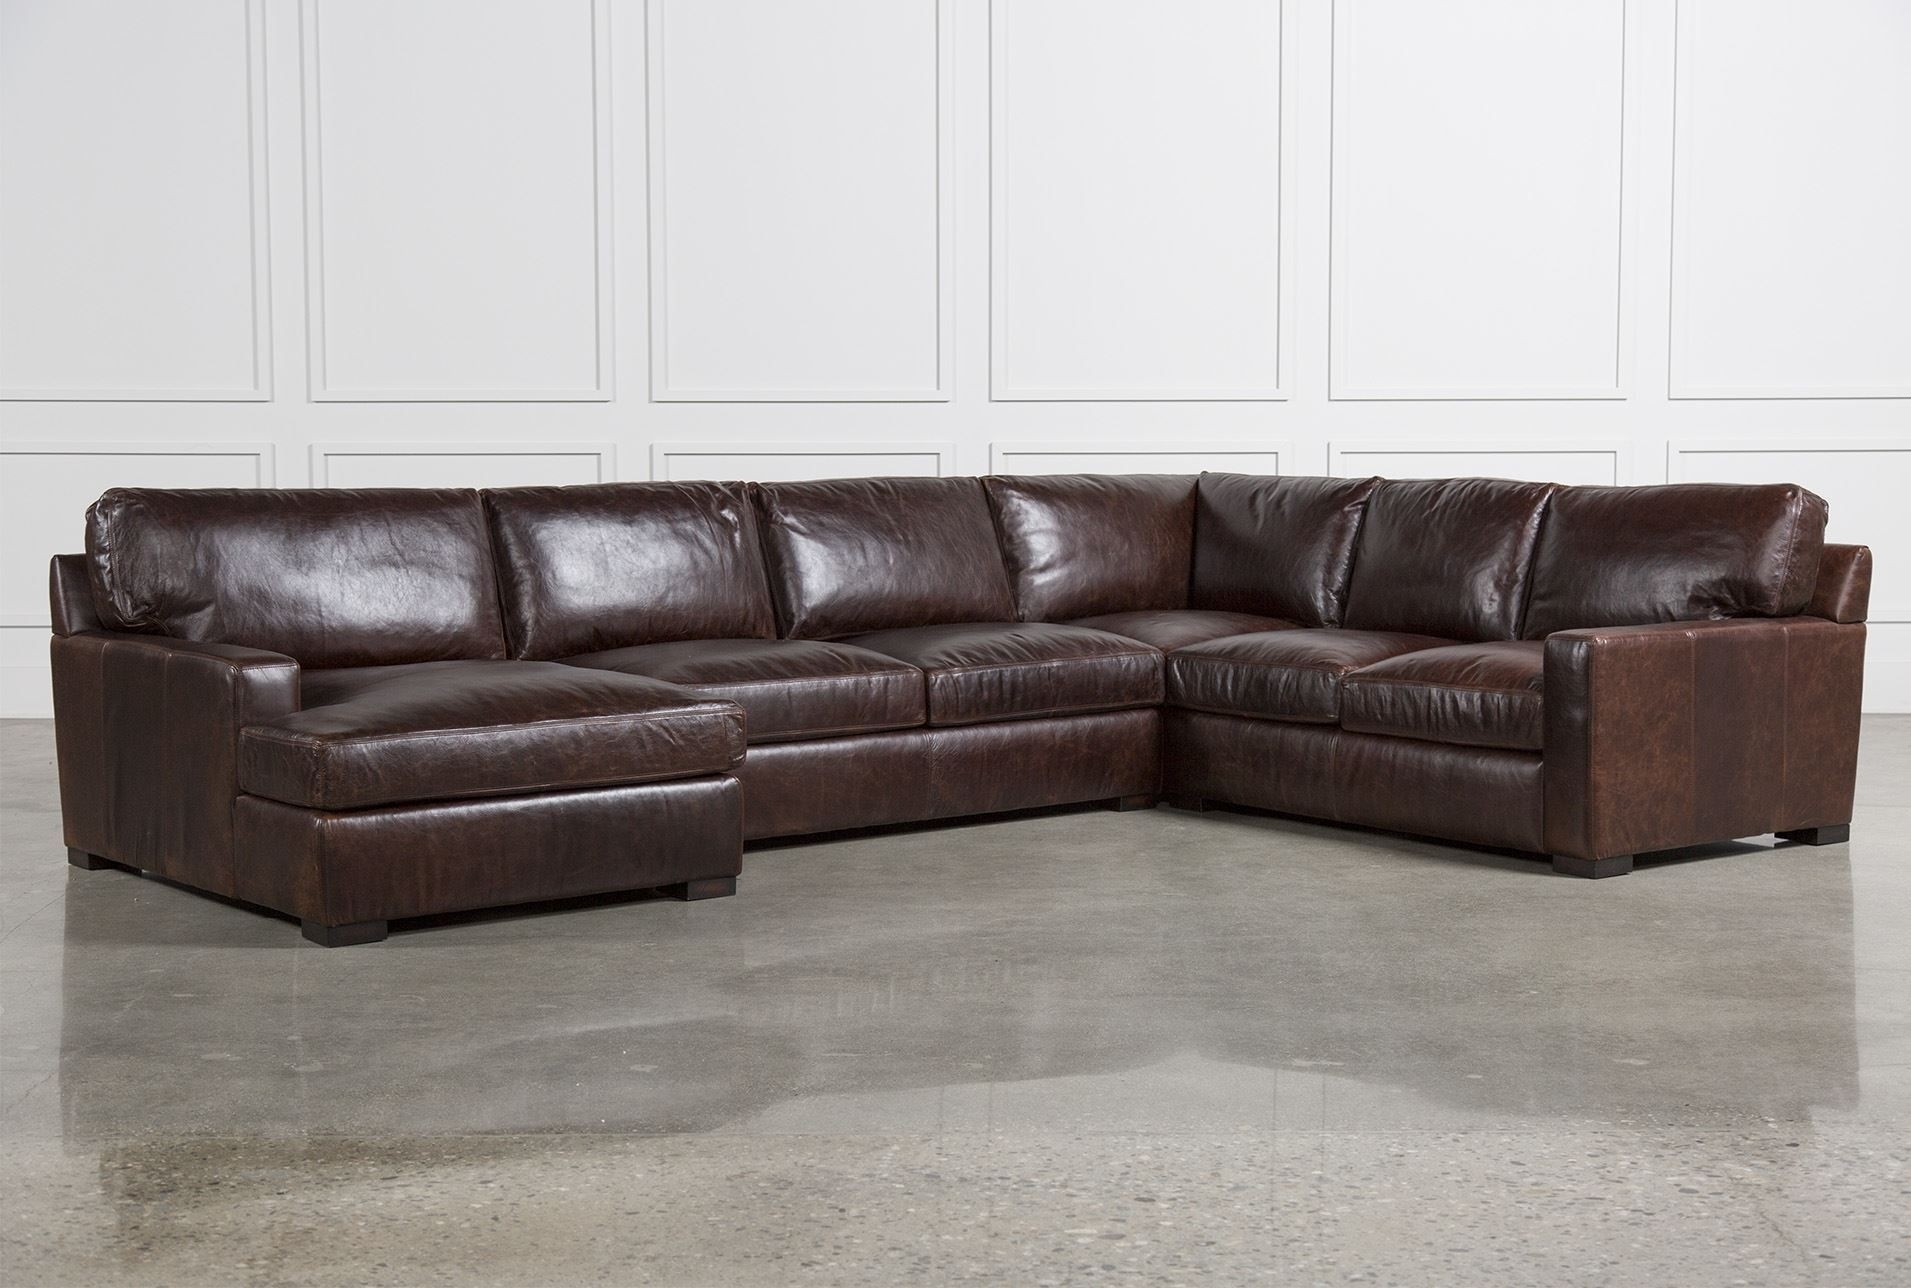 Gordon 3 Piece Sectional W/laf Chaise | For The Home | Pinterest | 3 within Glamour Ii 3 Piece Sectionals